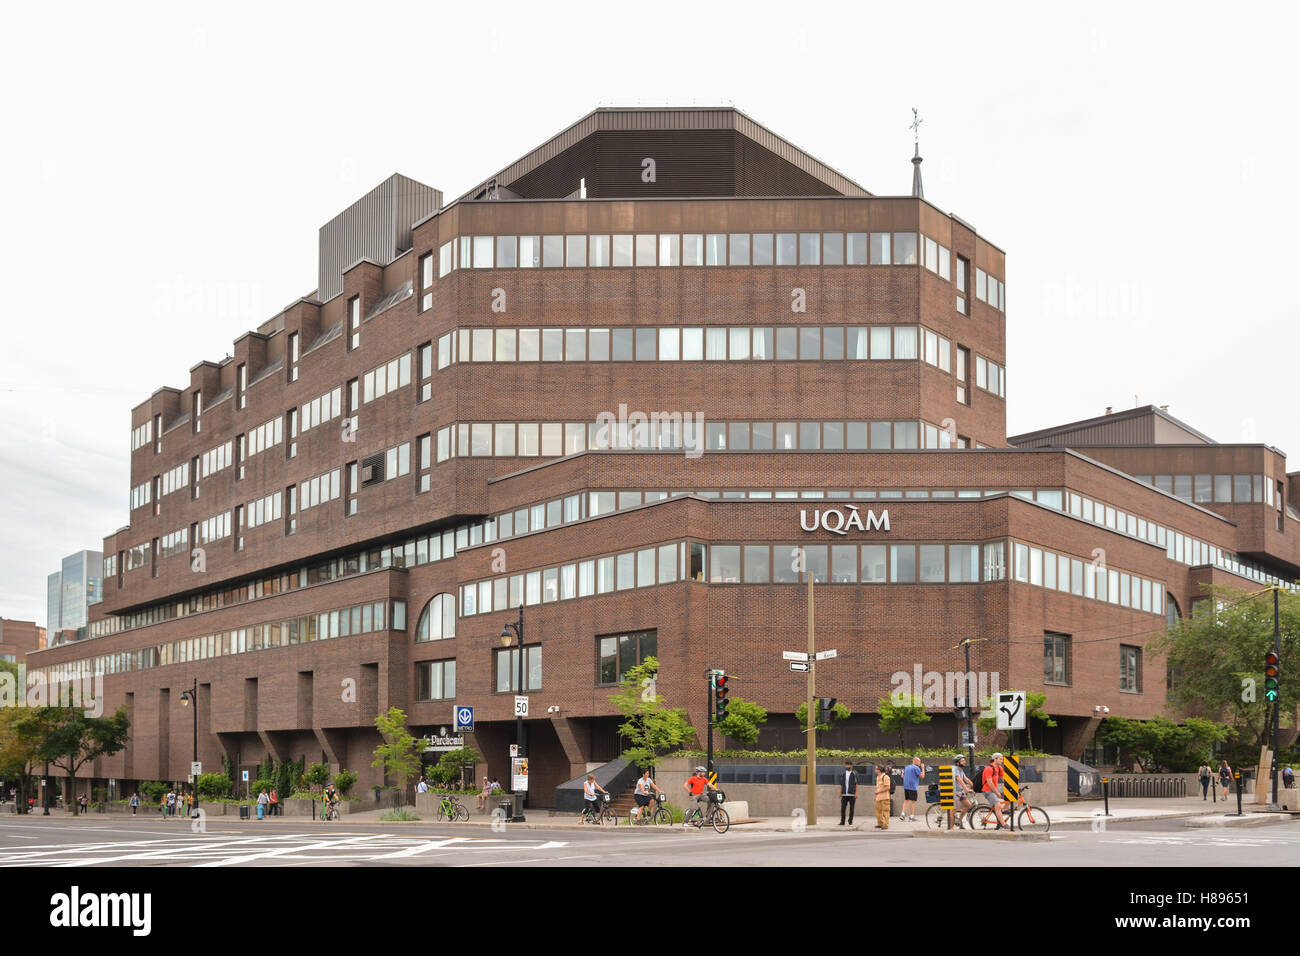 UQAM - University of Quebec in Montreal - Montreal, Canada - Stock Image